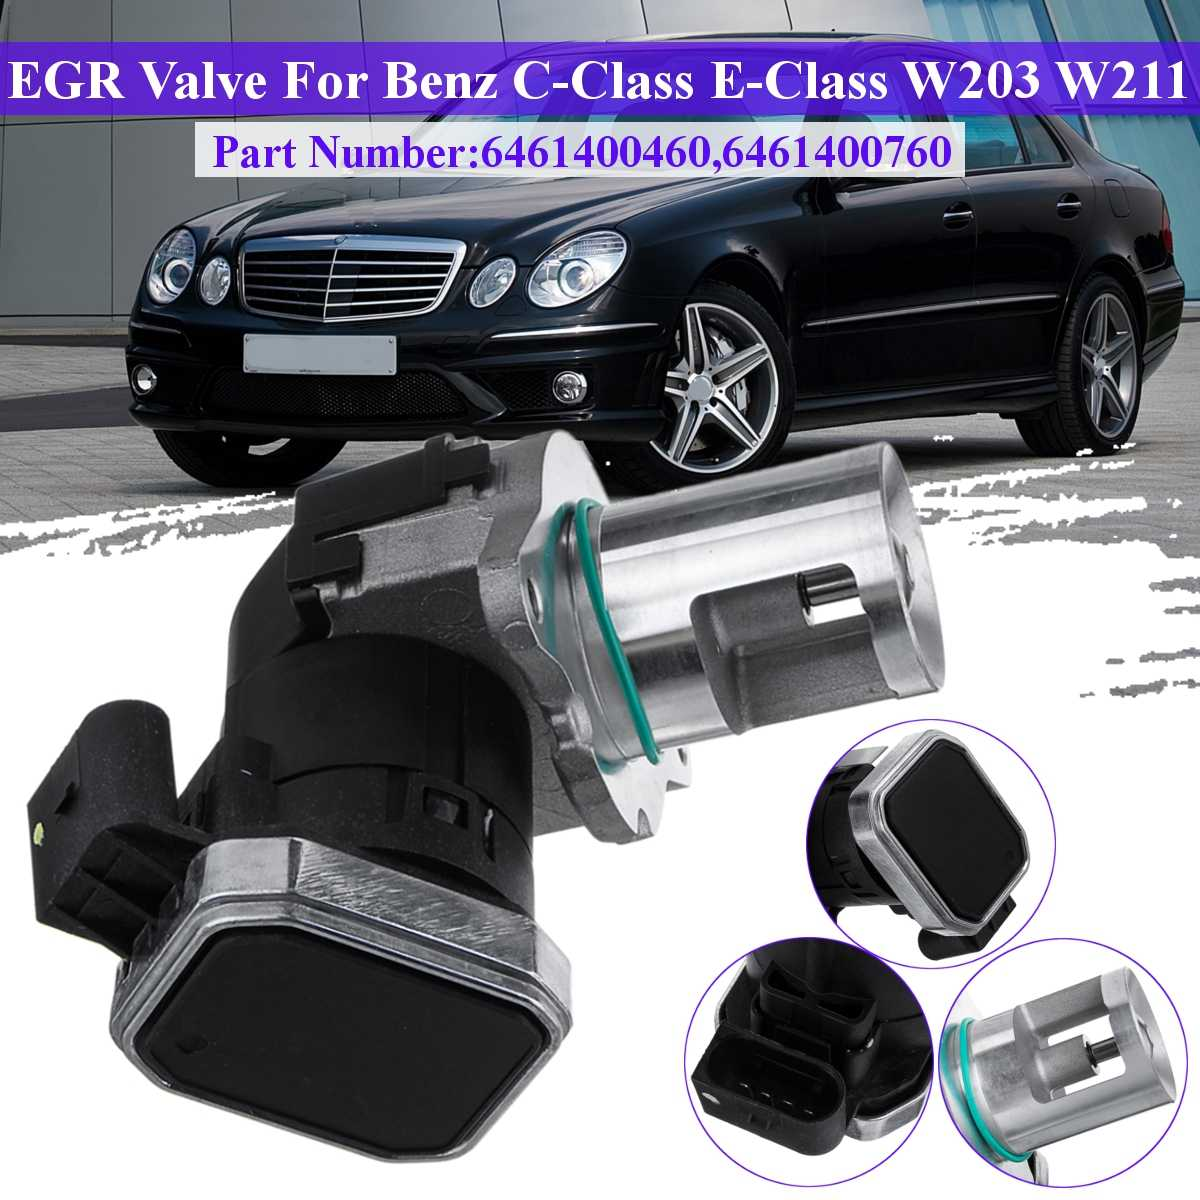 Car Exhaust Gas Recirculation Valve EGR Valve For Mercedes C-Class E-Class CLK W203 W211 S203 #6461400460 6461400760 Accessories